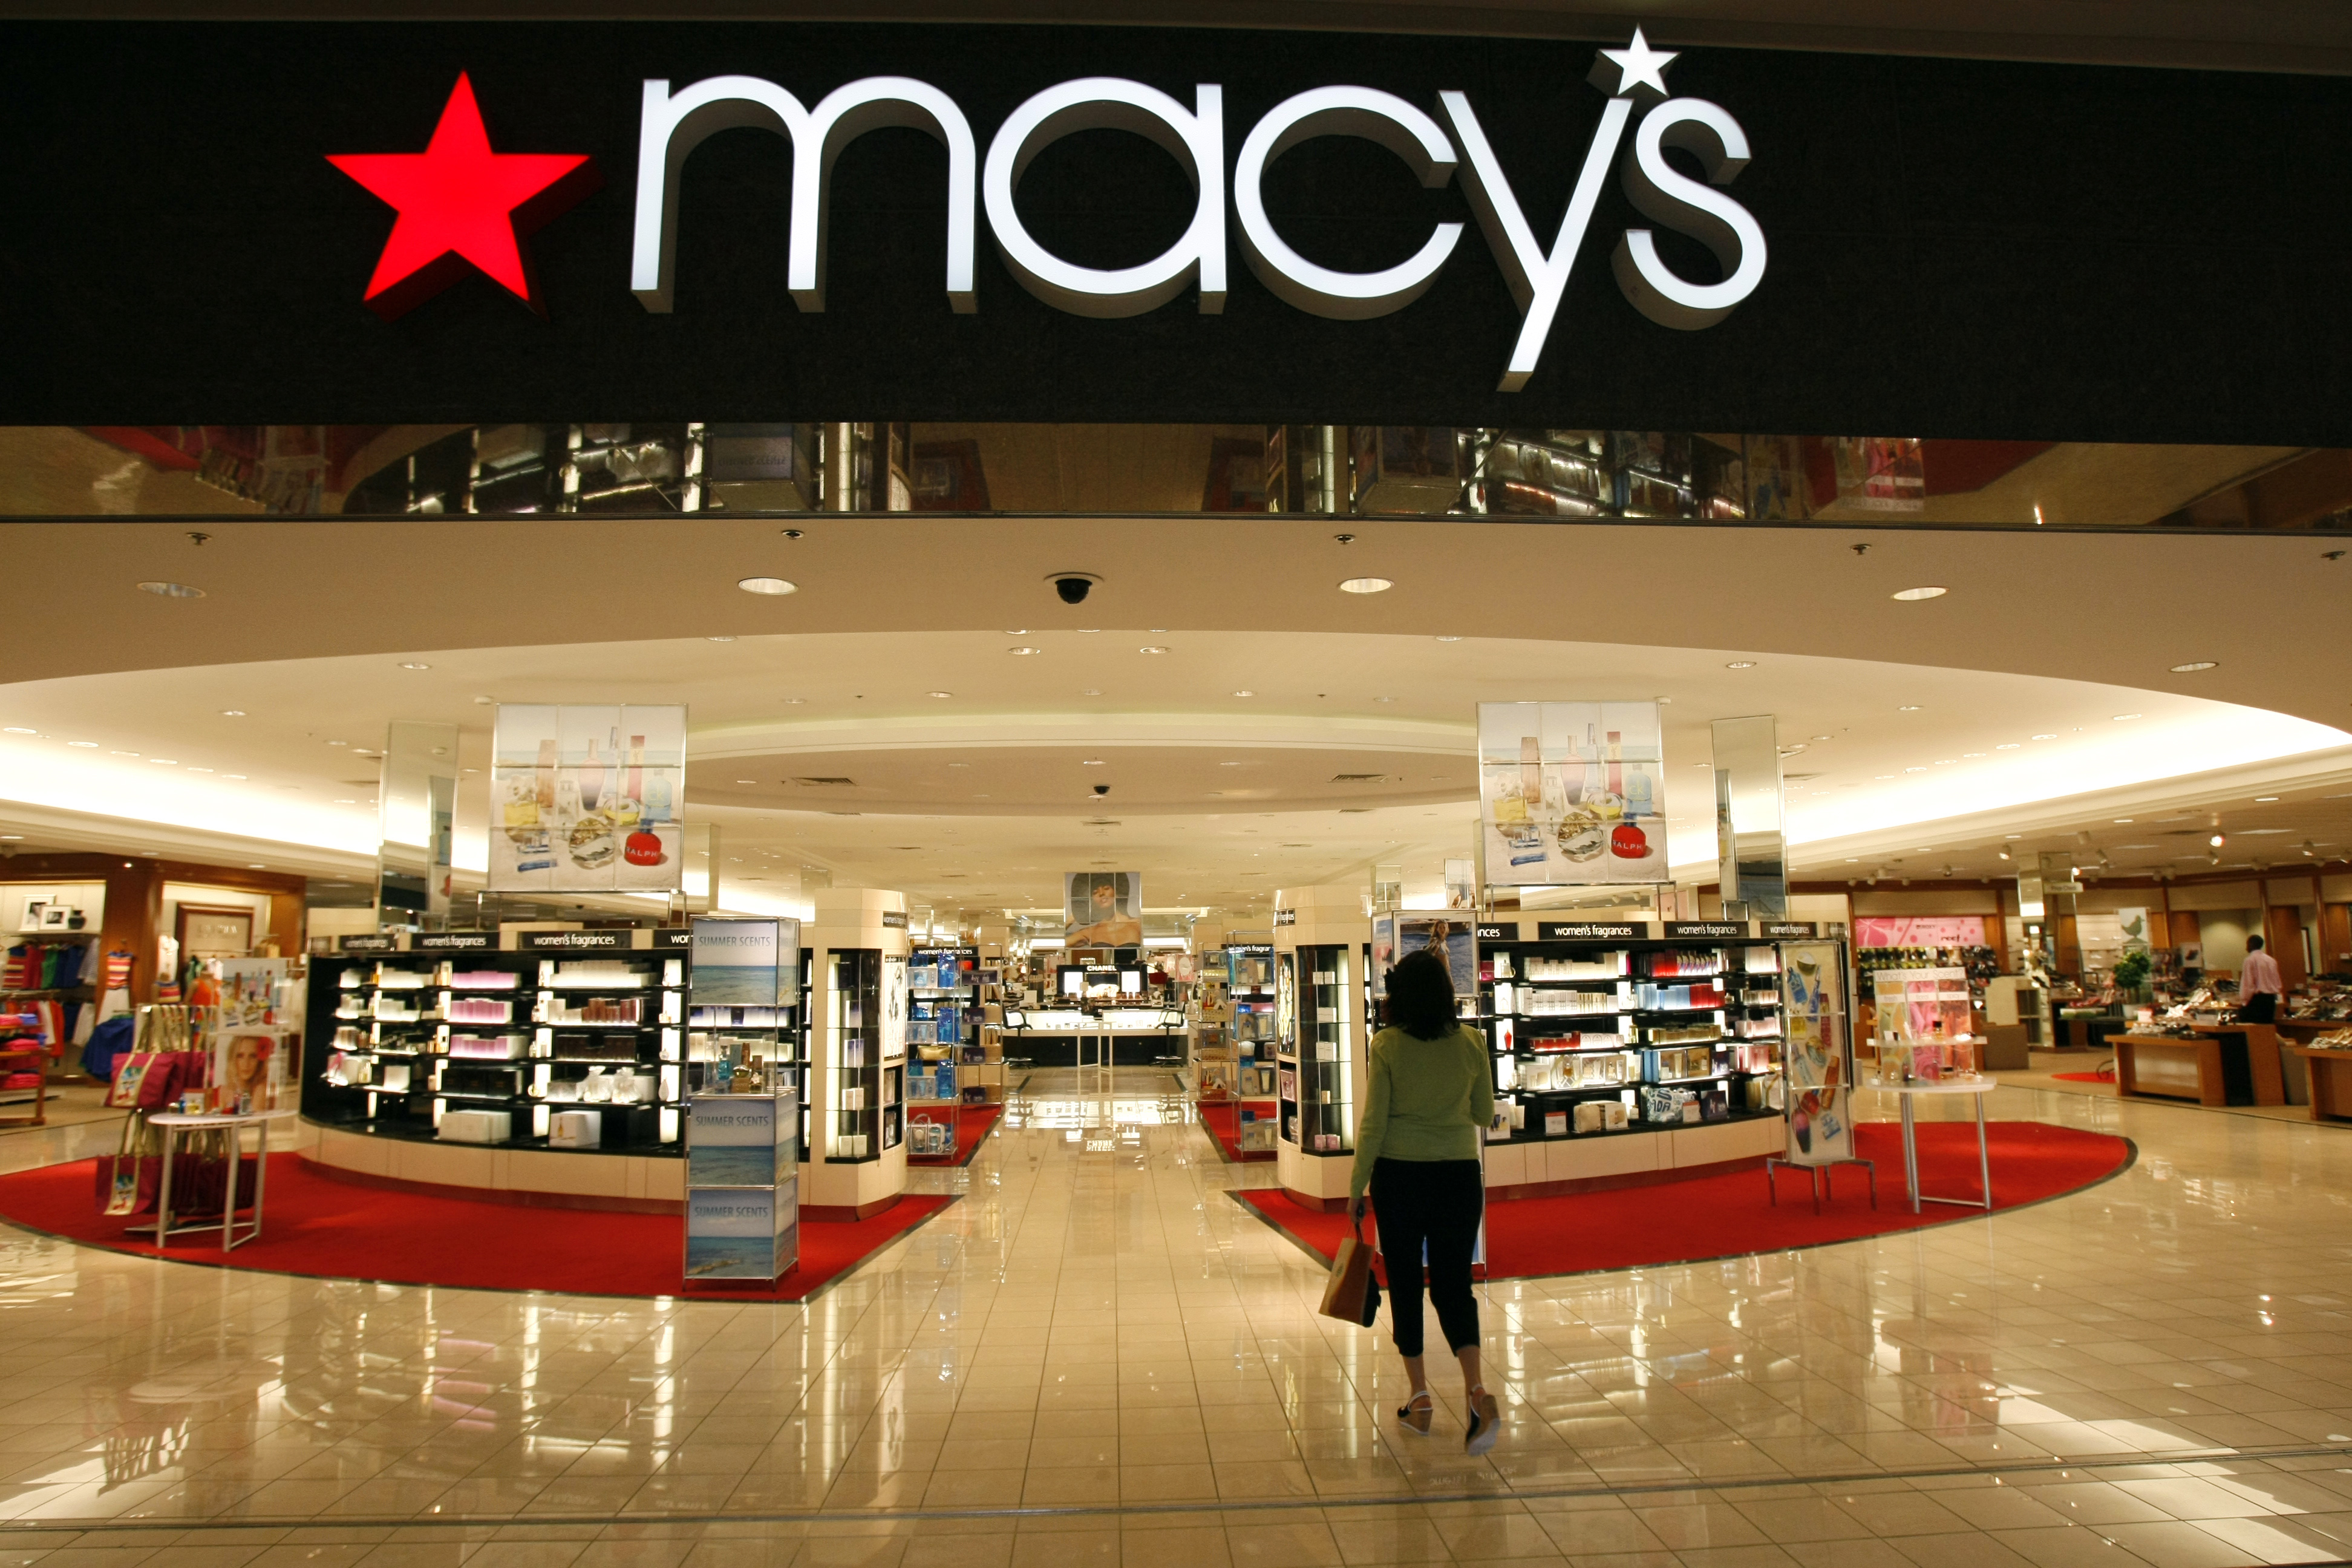 A woman shops at the Macy's store at a mall in a Denver suburb May 16, 2008.